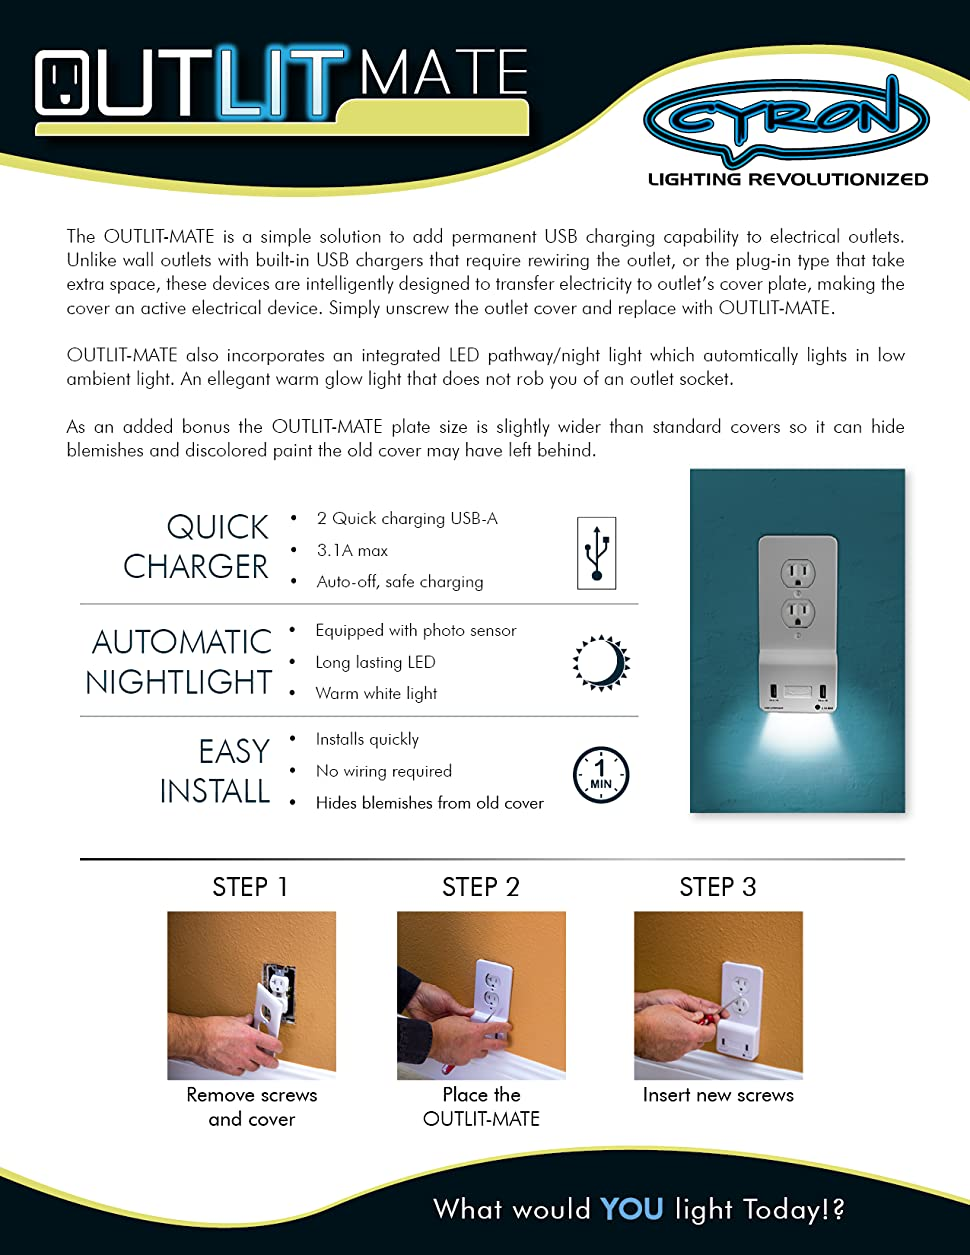 Cyron Outlitmate Dual Usb Port Wall Quick Charger Outlet Duplex Led Nightlight And Switch Wiring No Bulky Plugs Batteries More Lost Chargers